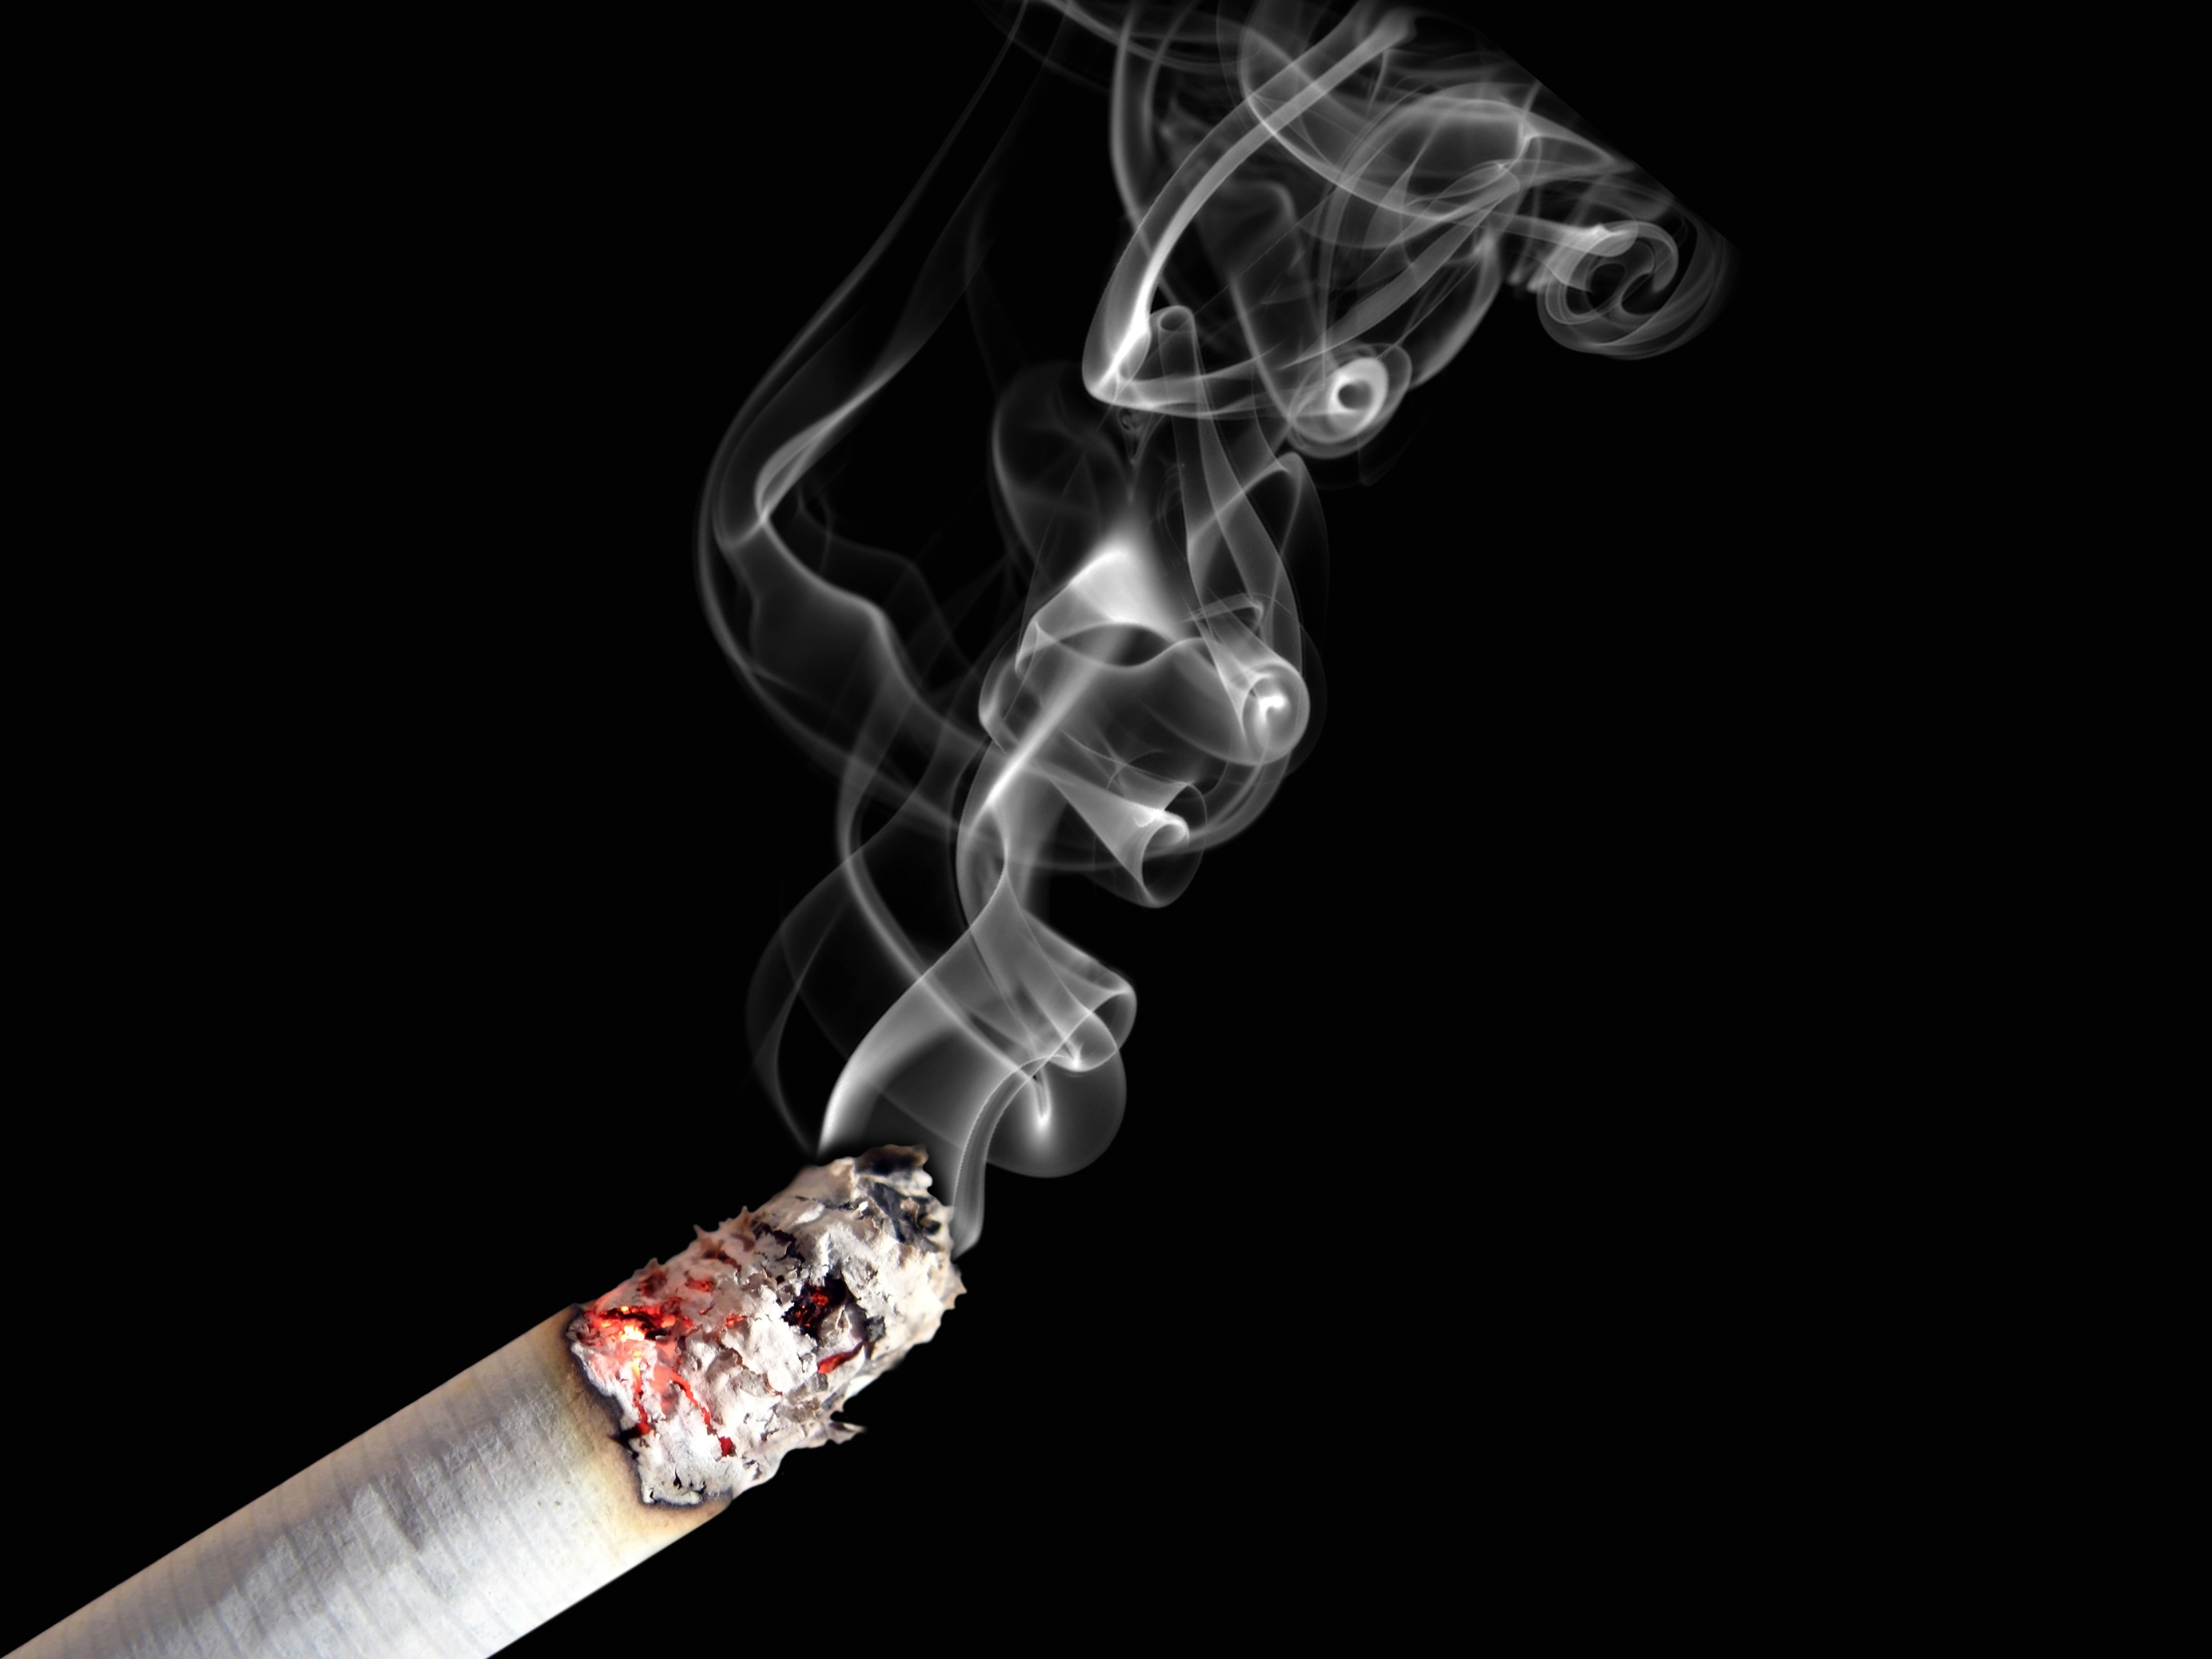 cigarette smoking health